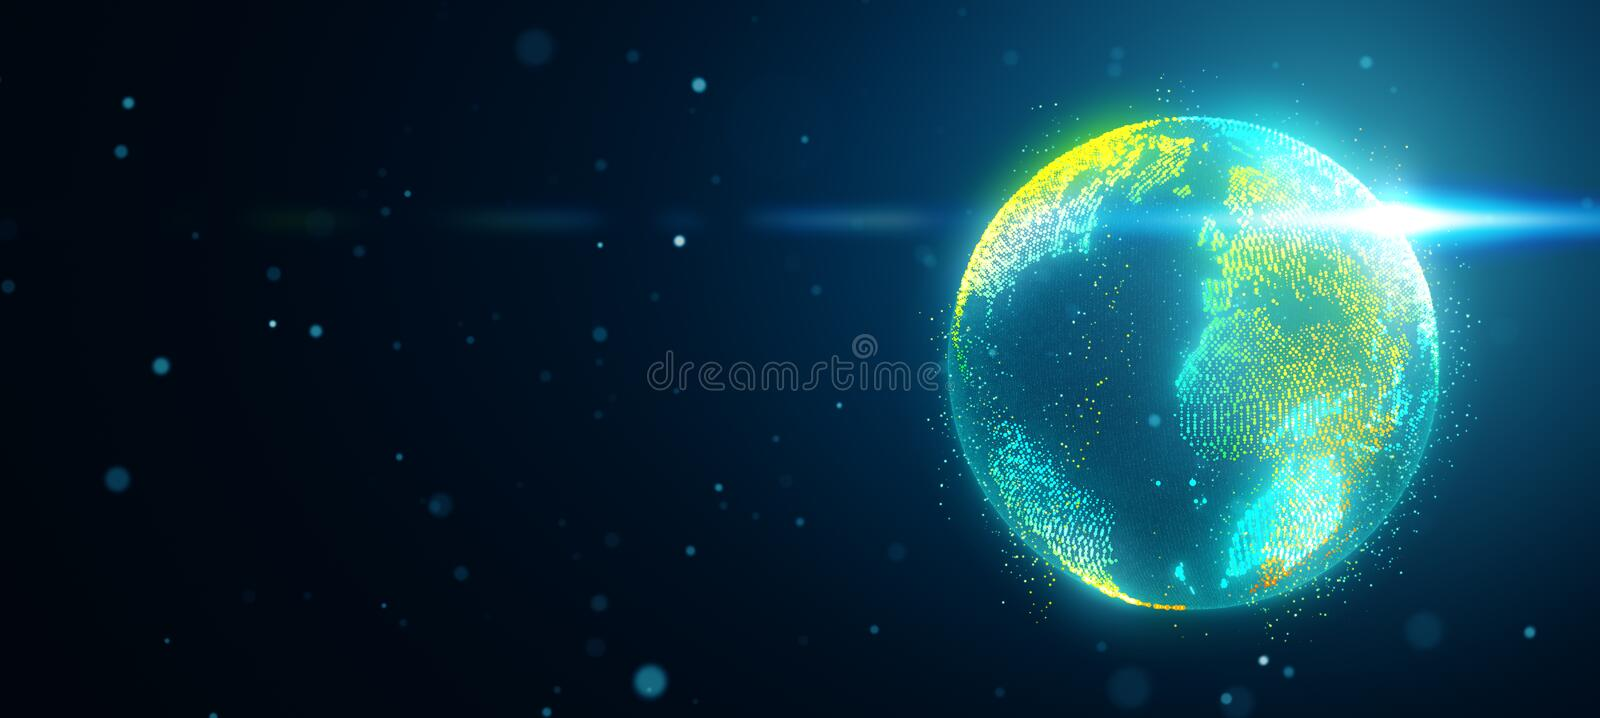 Planet earth in space with obscured flare vector illustration